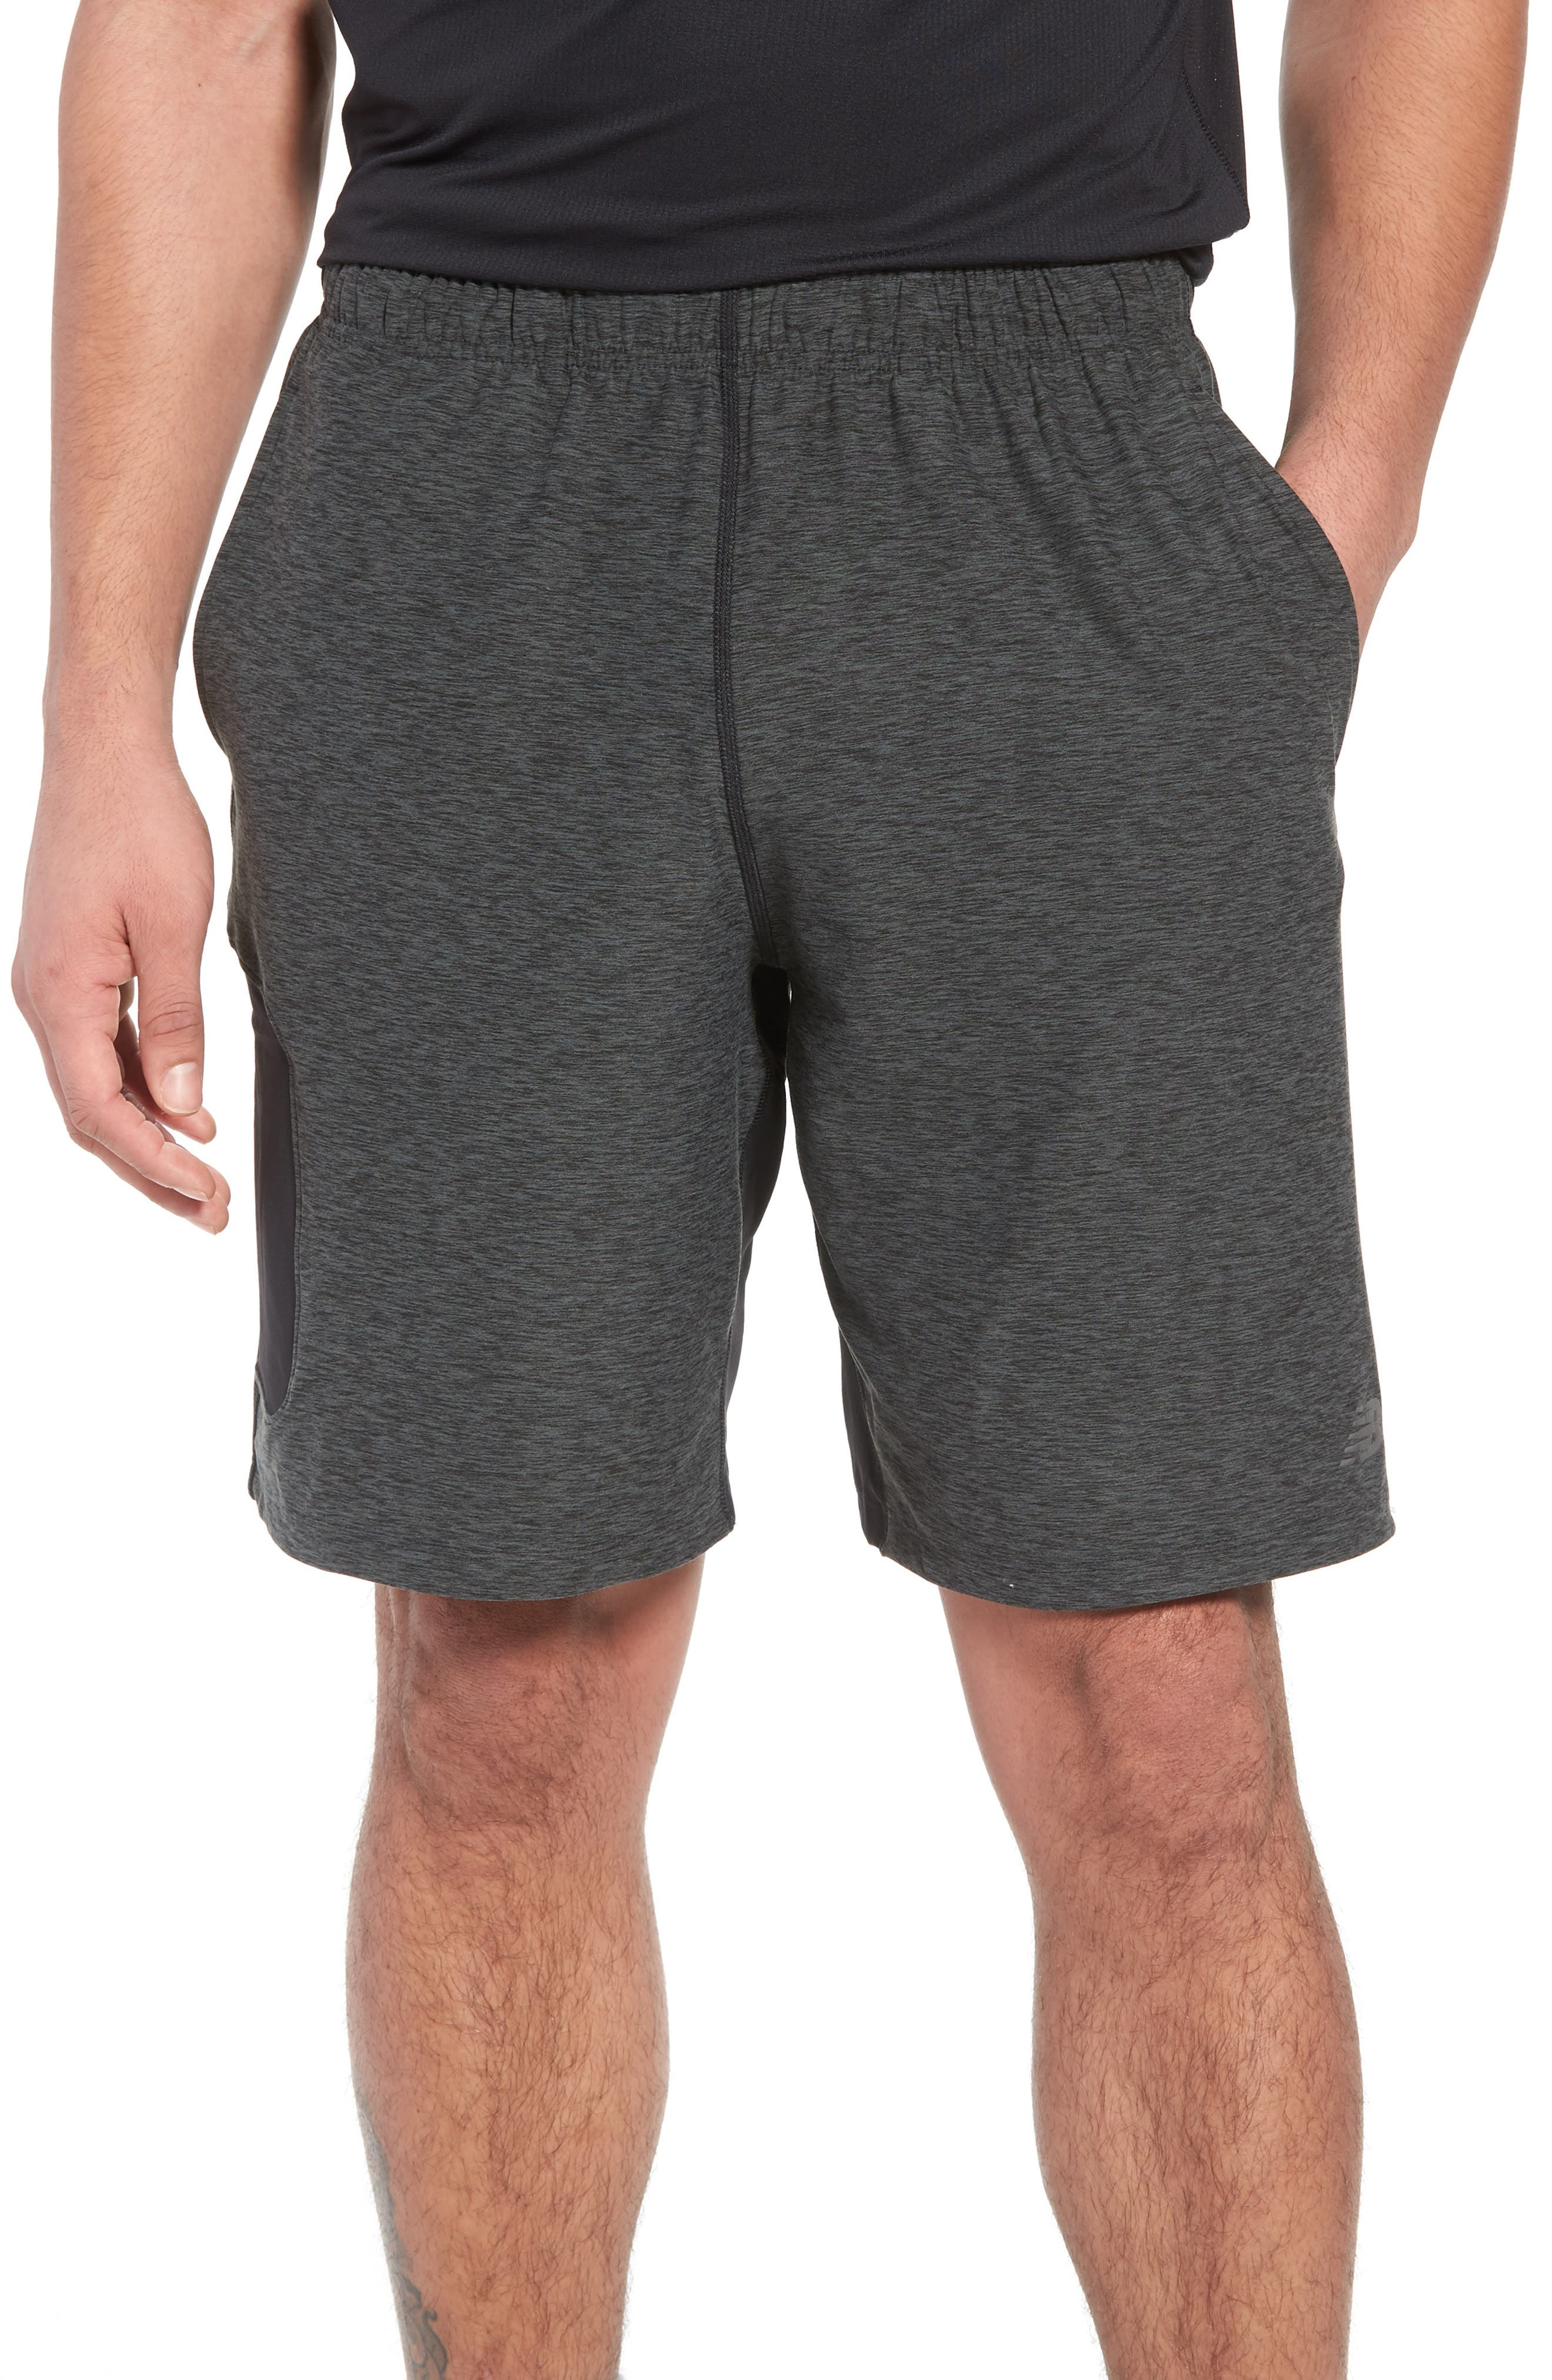 Anticipate Shorts,                             Main thumbnail 1, color,                             HEATHER CHARCOAL